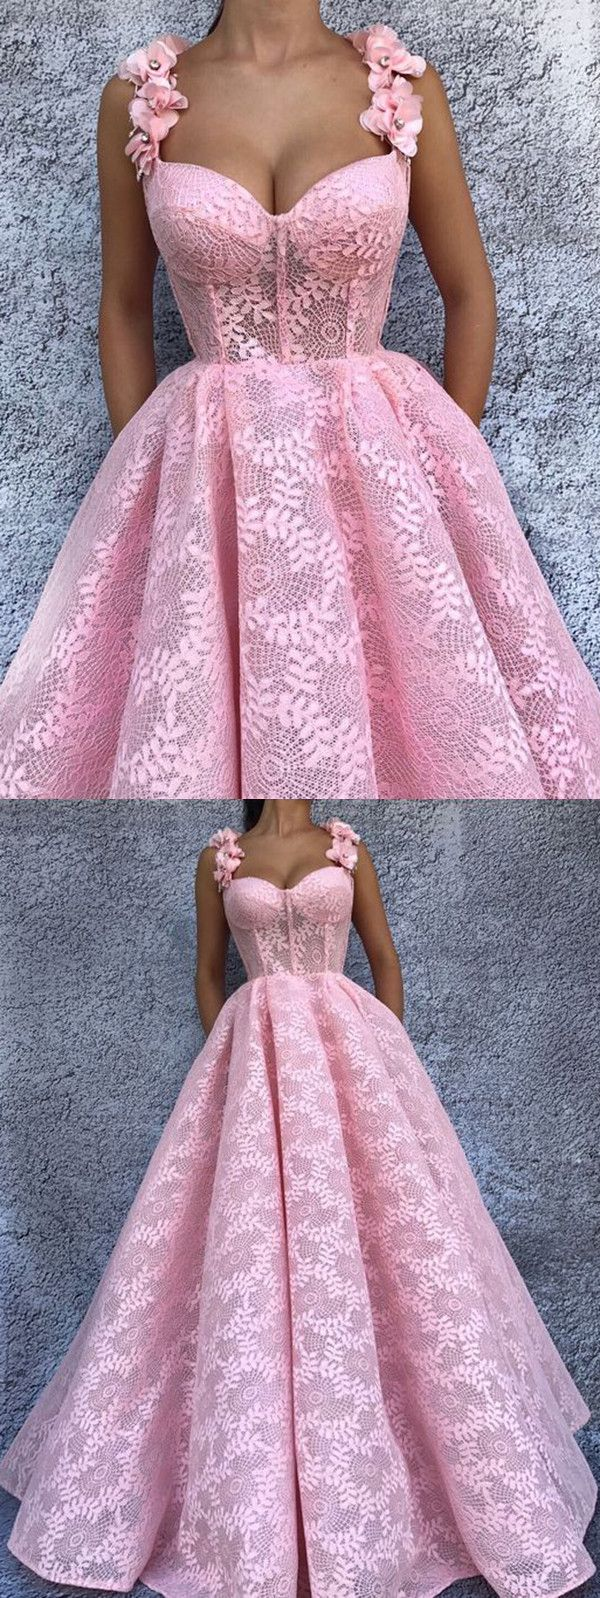 Ball gown prom dress pink vintage lace african prom dress vb